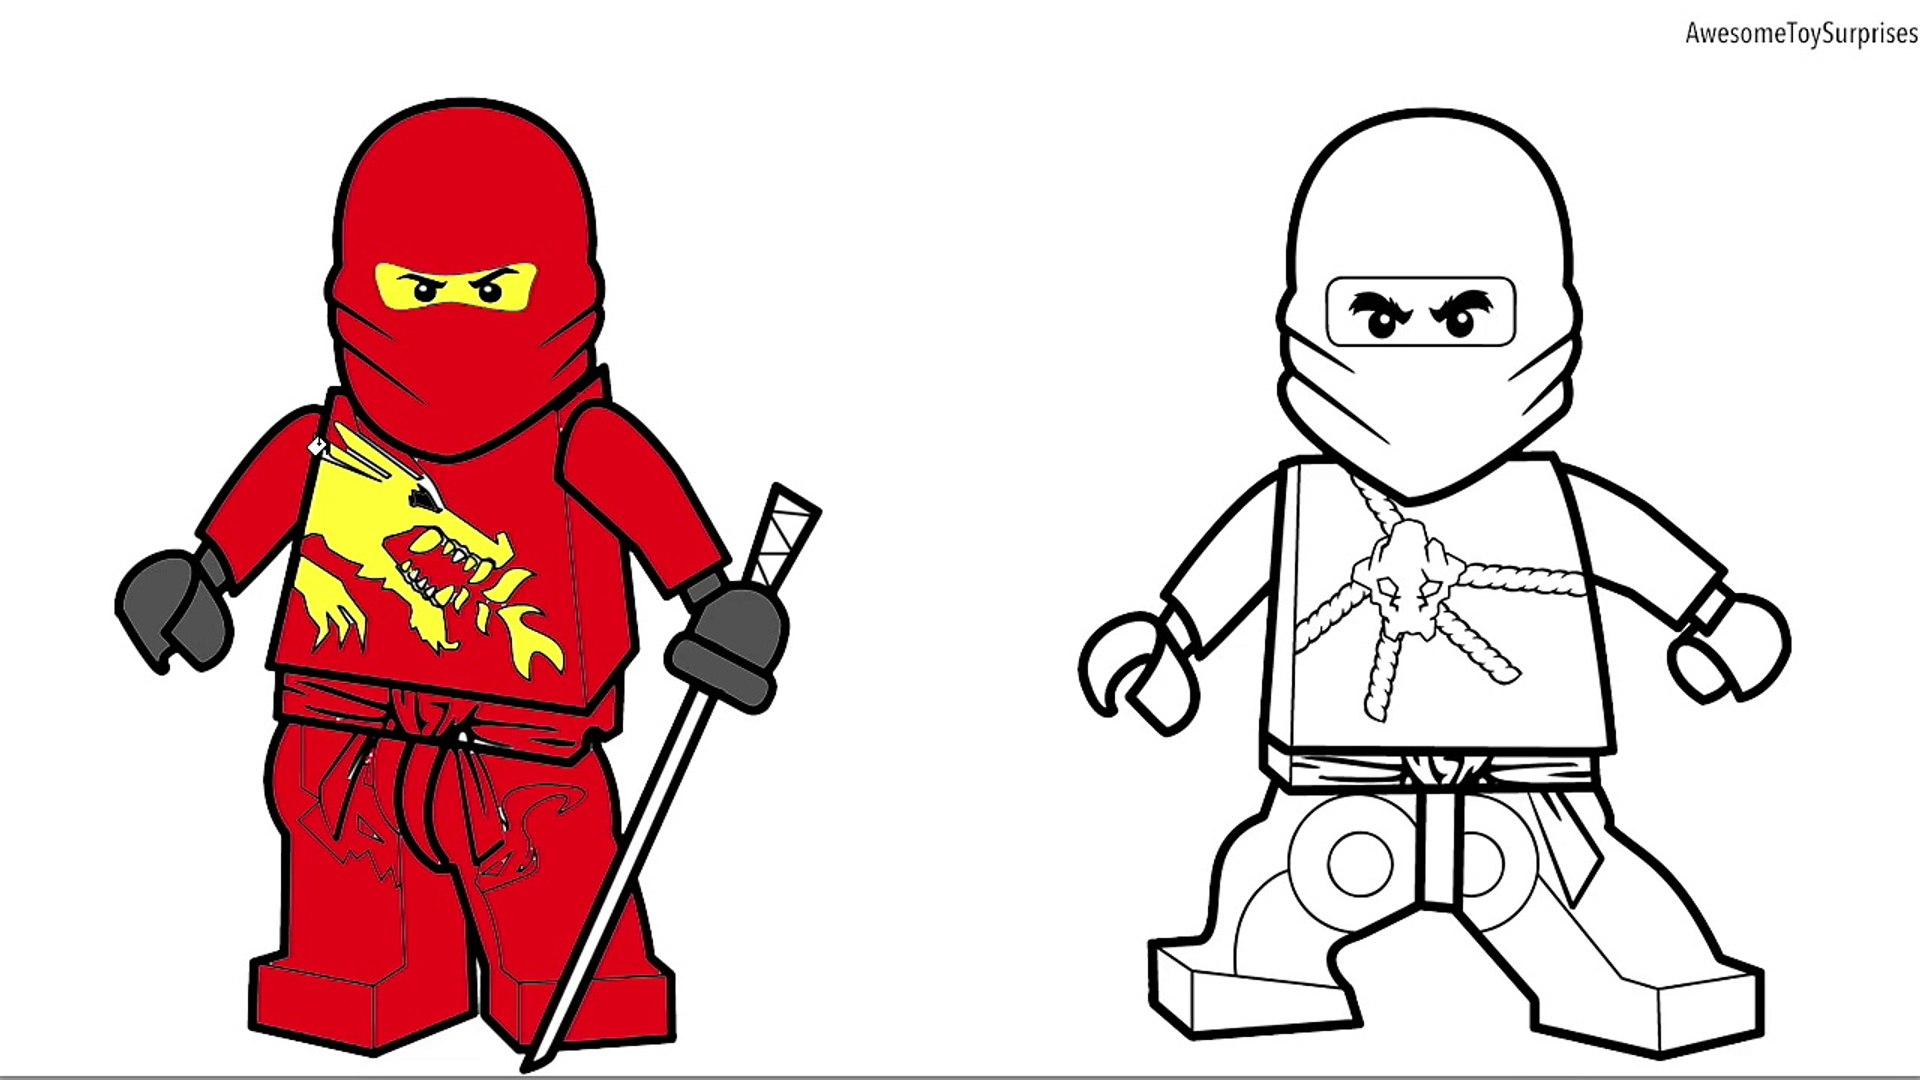 Lego Ninjago Jay And Lloyd Coloring Page Fun Coloring Activity For Kids Toddlers Childr Video Dailymotion